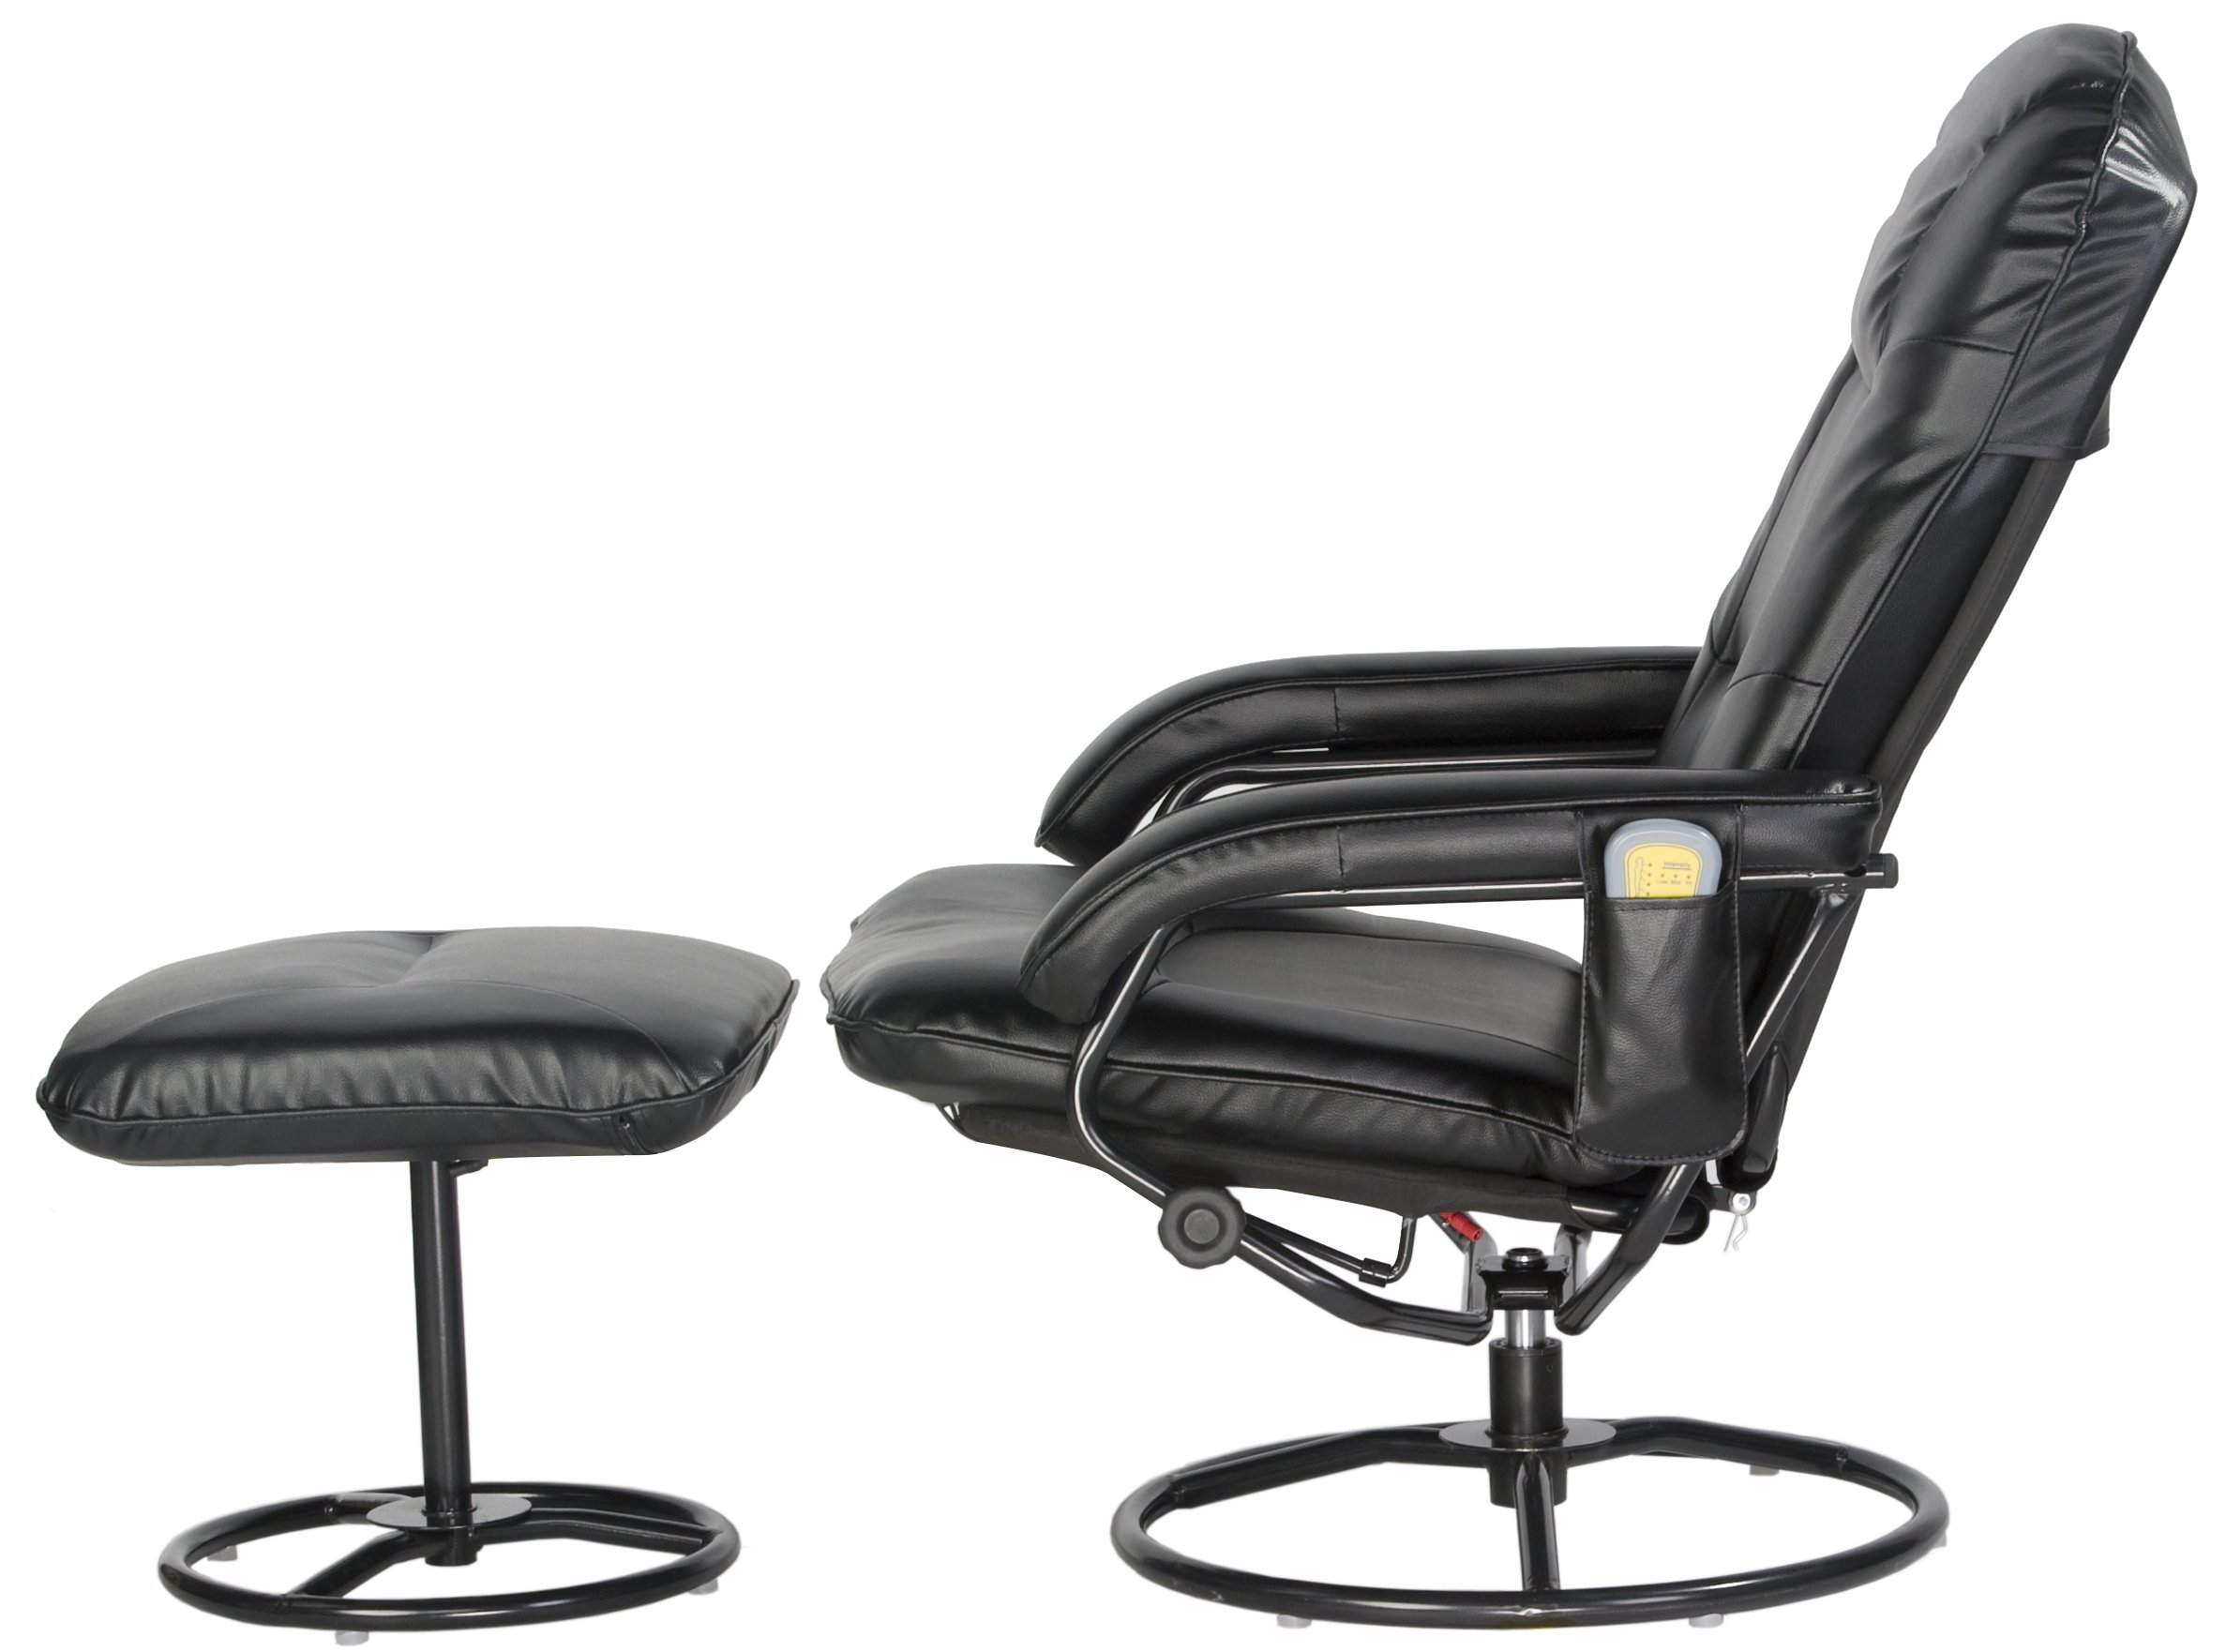 Comfort Products 60-0582 Leisure Recliner Chair with 10-Motor Massage & Heat, Black by Comfort Products (Image #3)